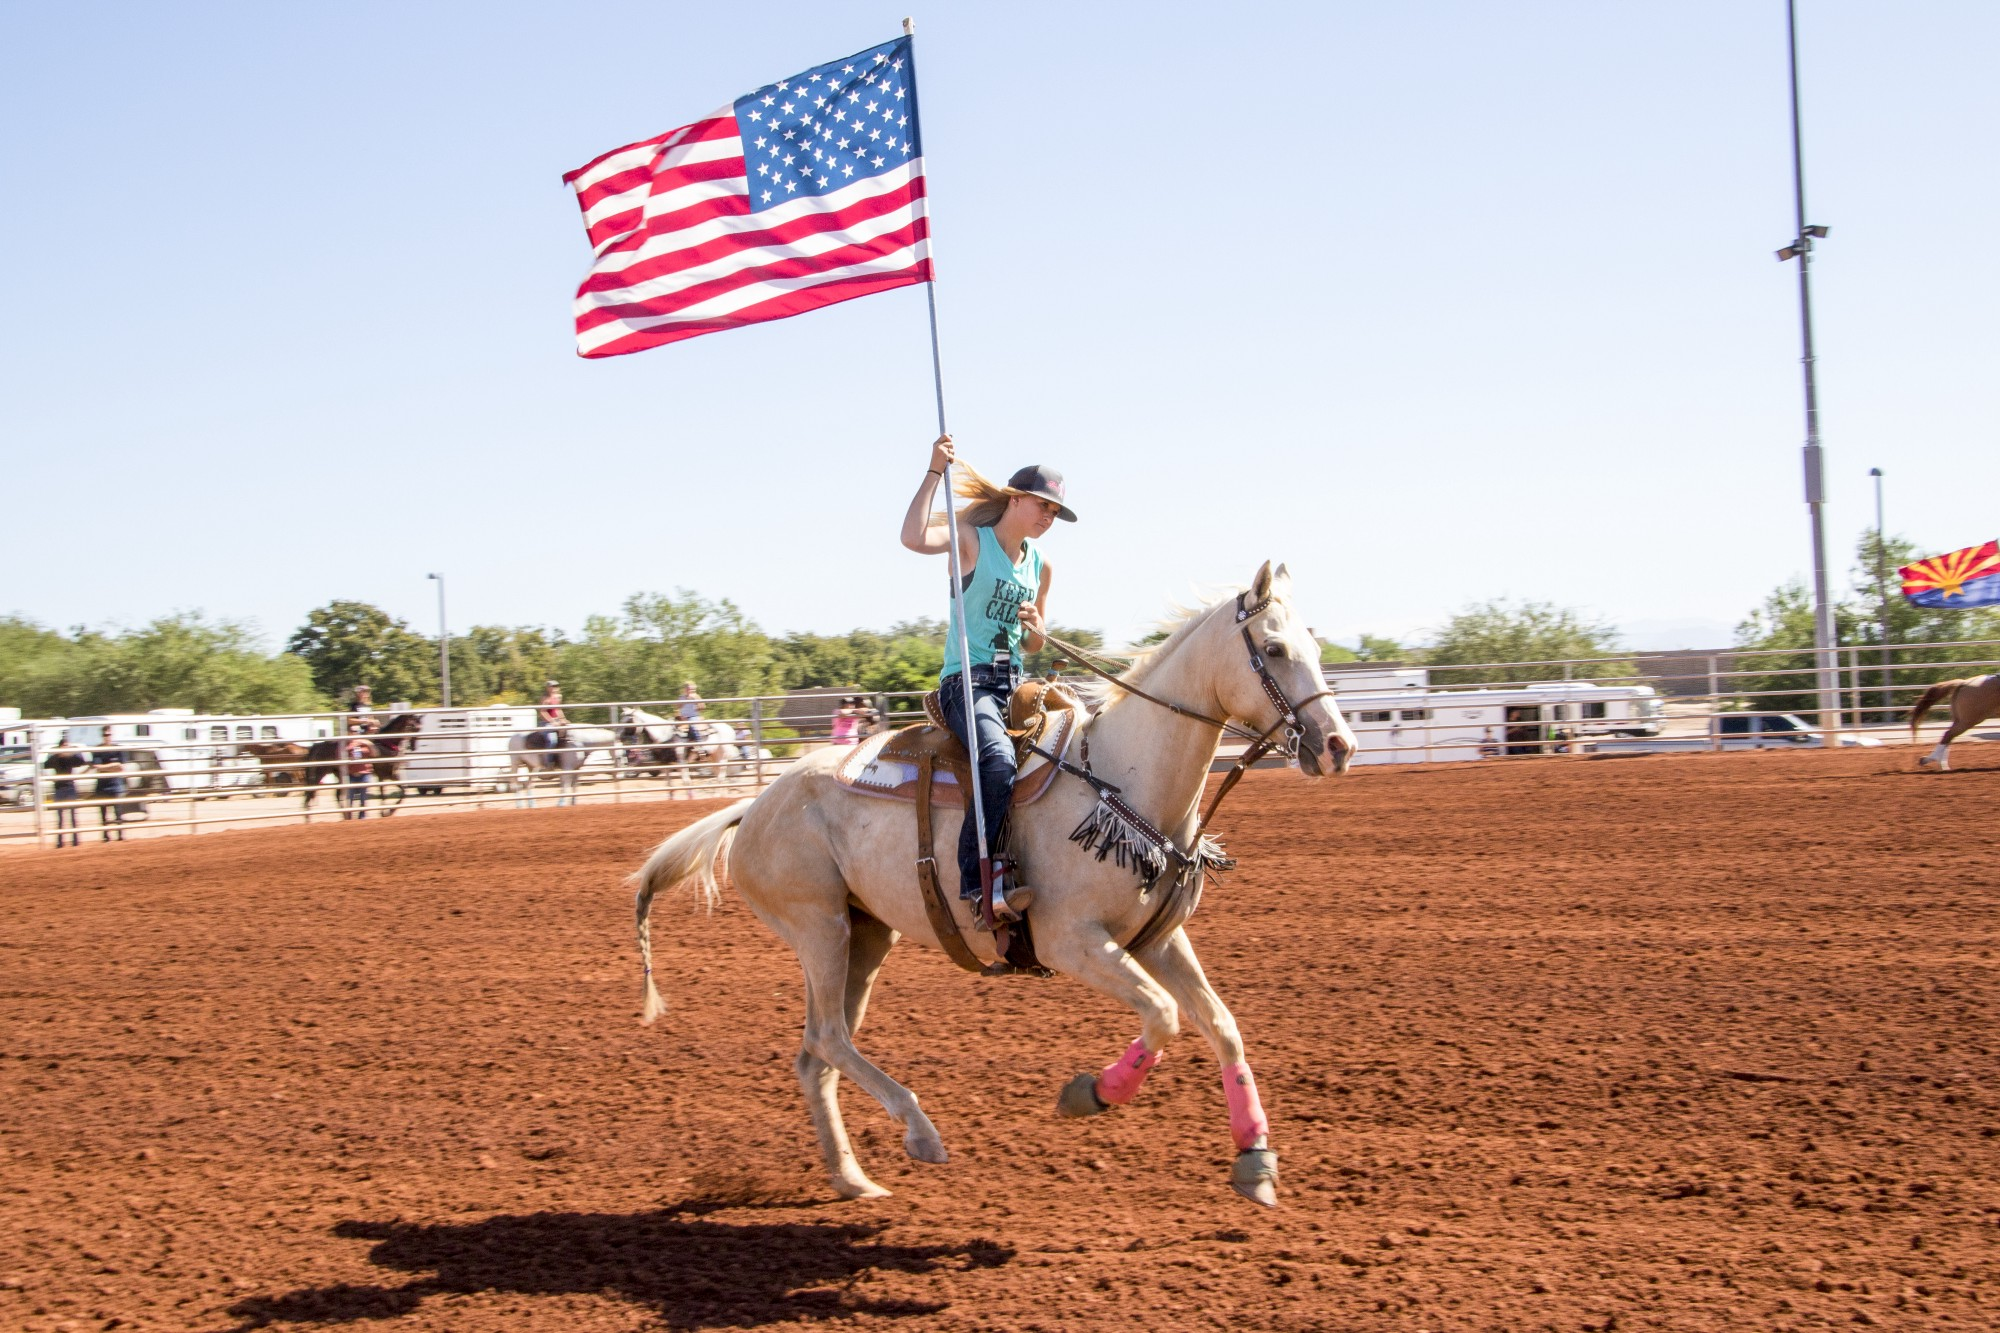 rodeo queen in the ride up, carrying an American flag